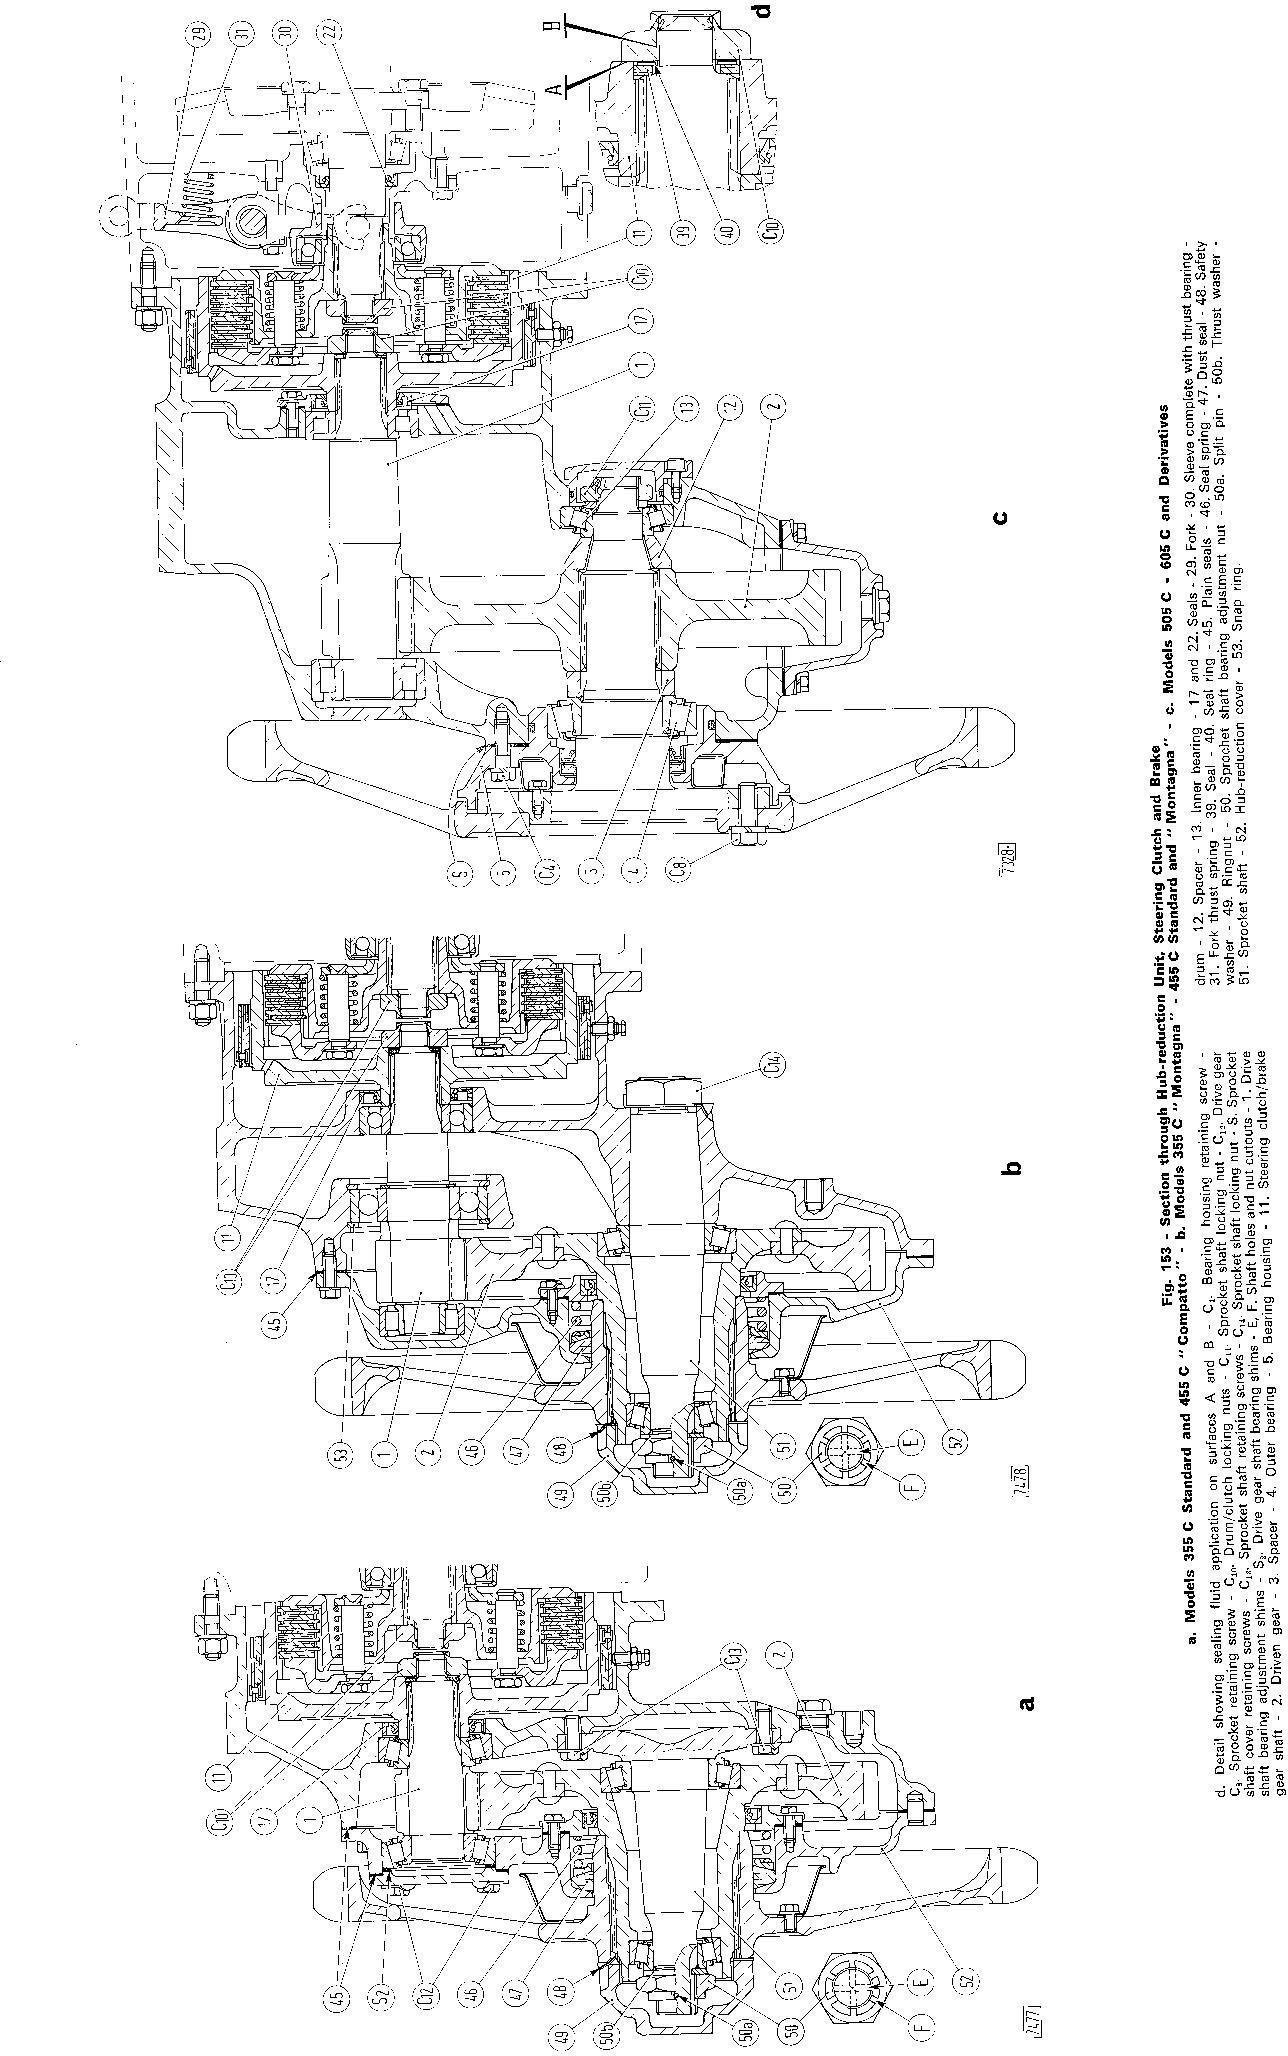 Fiat 355C, 455C, 505C, 605C Crawler Tractor Workshop Service Manual (6035416200) - 3